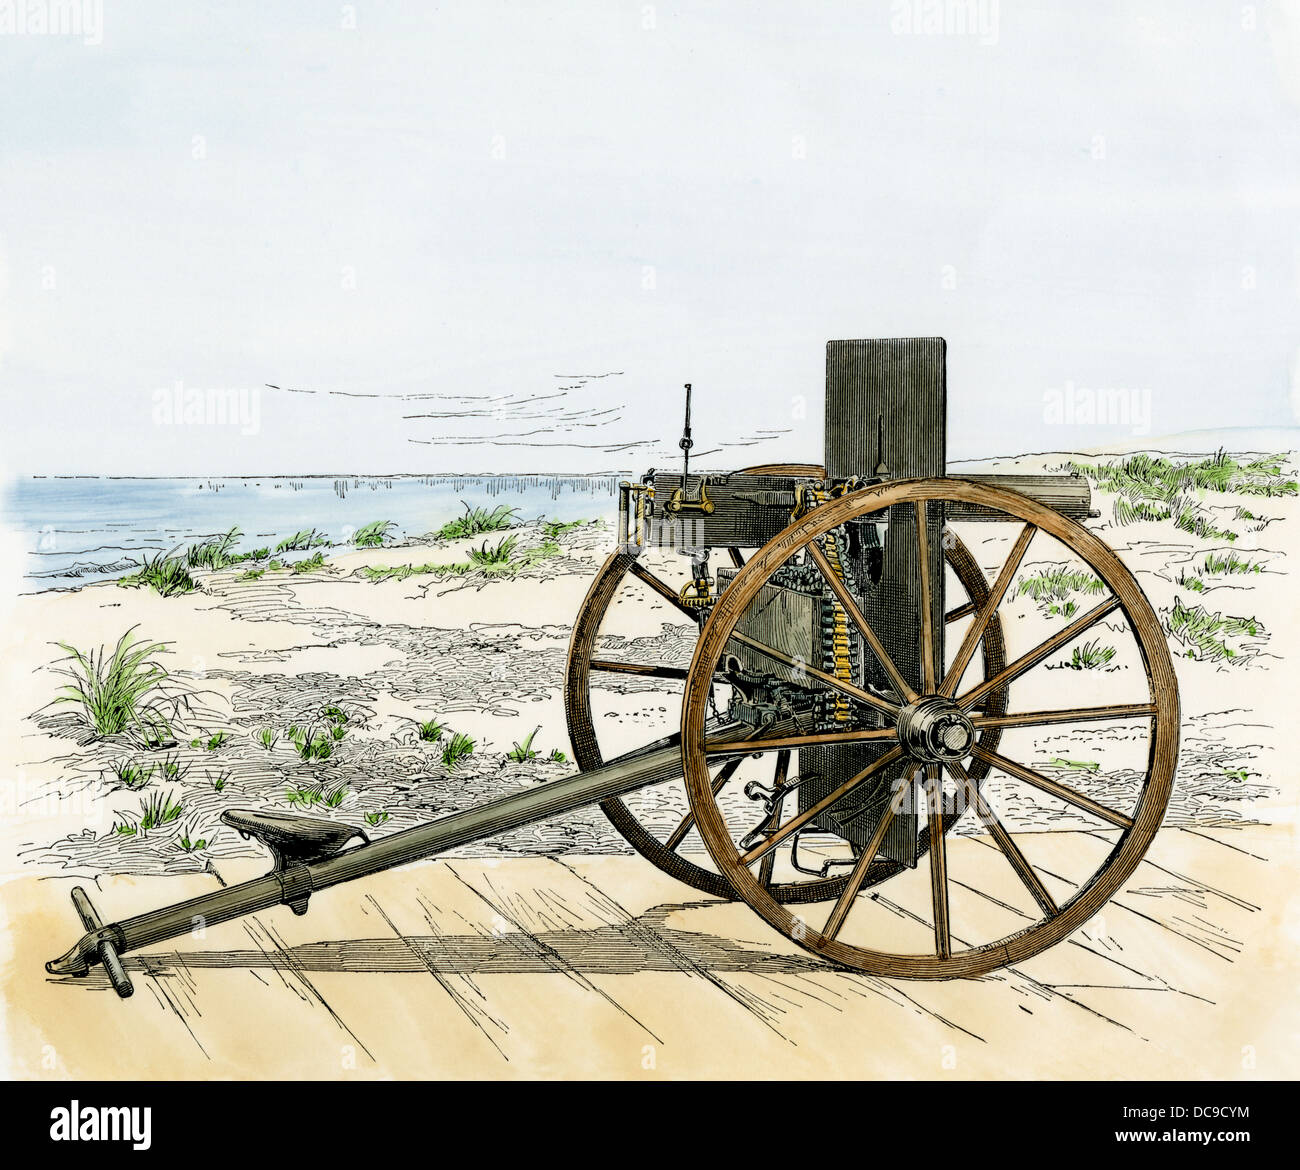 Maxim field gun, a type of Gatling gun, with a bullet-proof shield. 1880s. Hand-colored woodcut - Stock Image